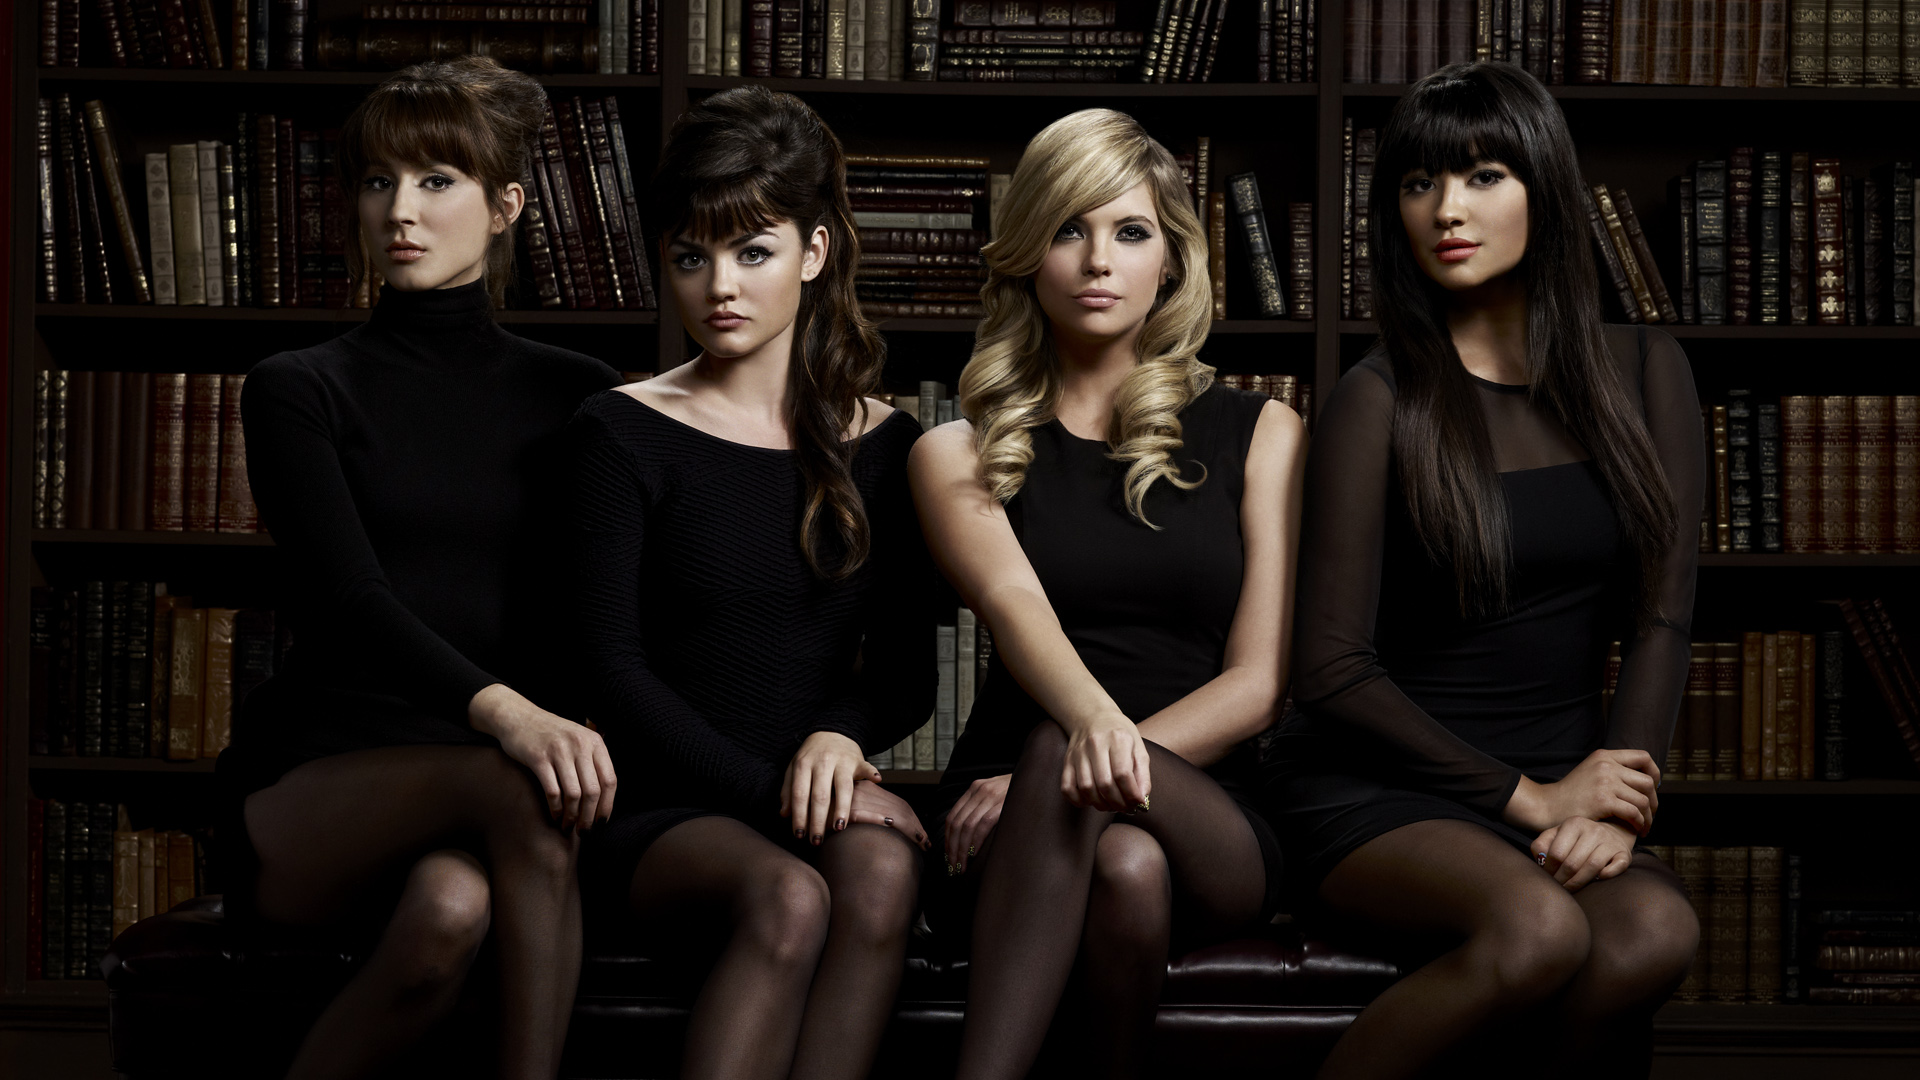 Images, posters, wallpapers de pretty little liars